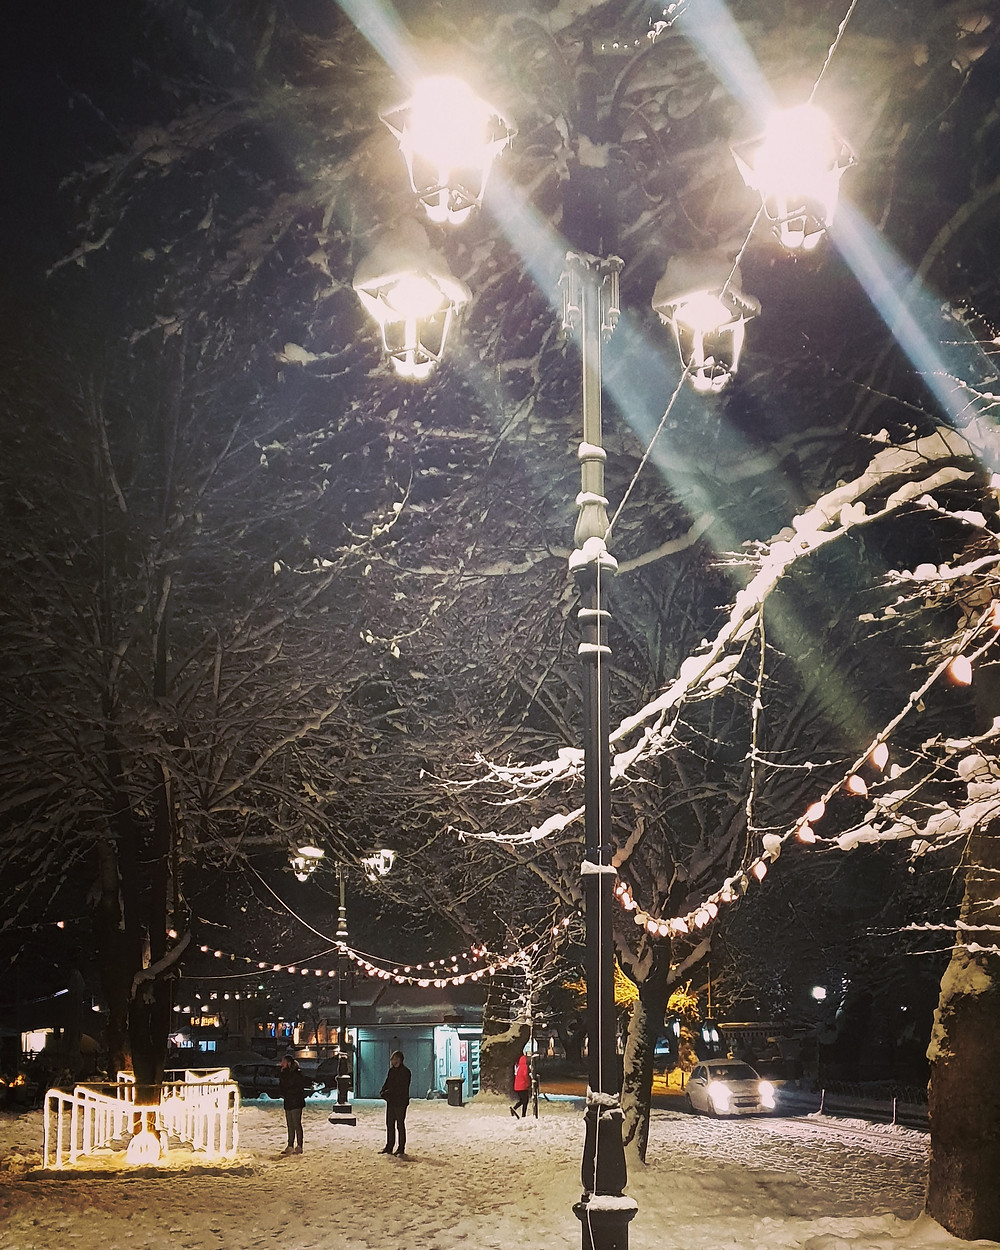 White night in the city - Photo by Mary Samou